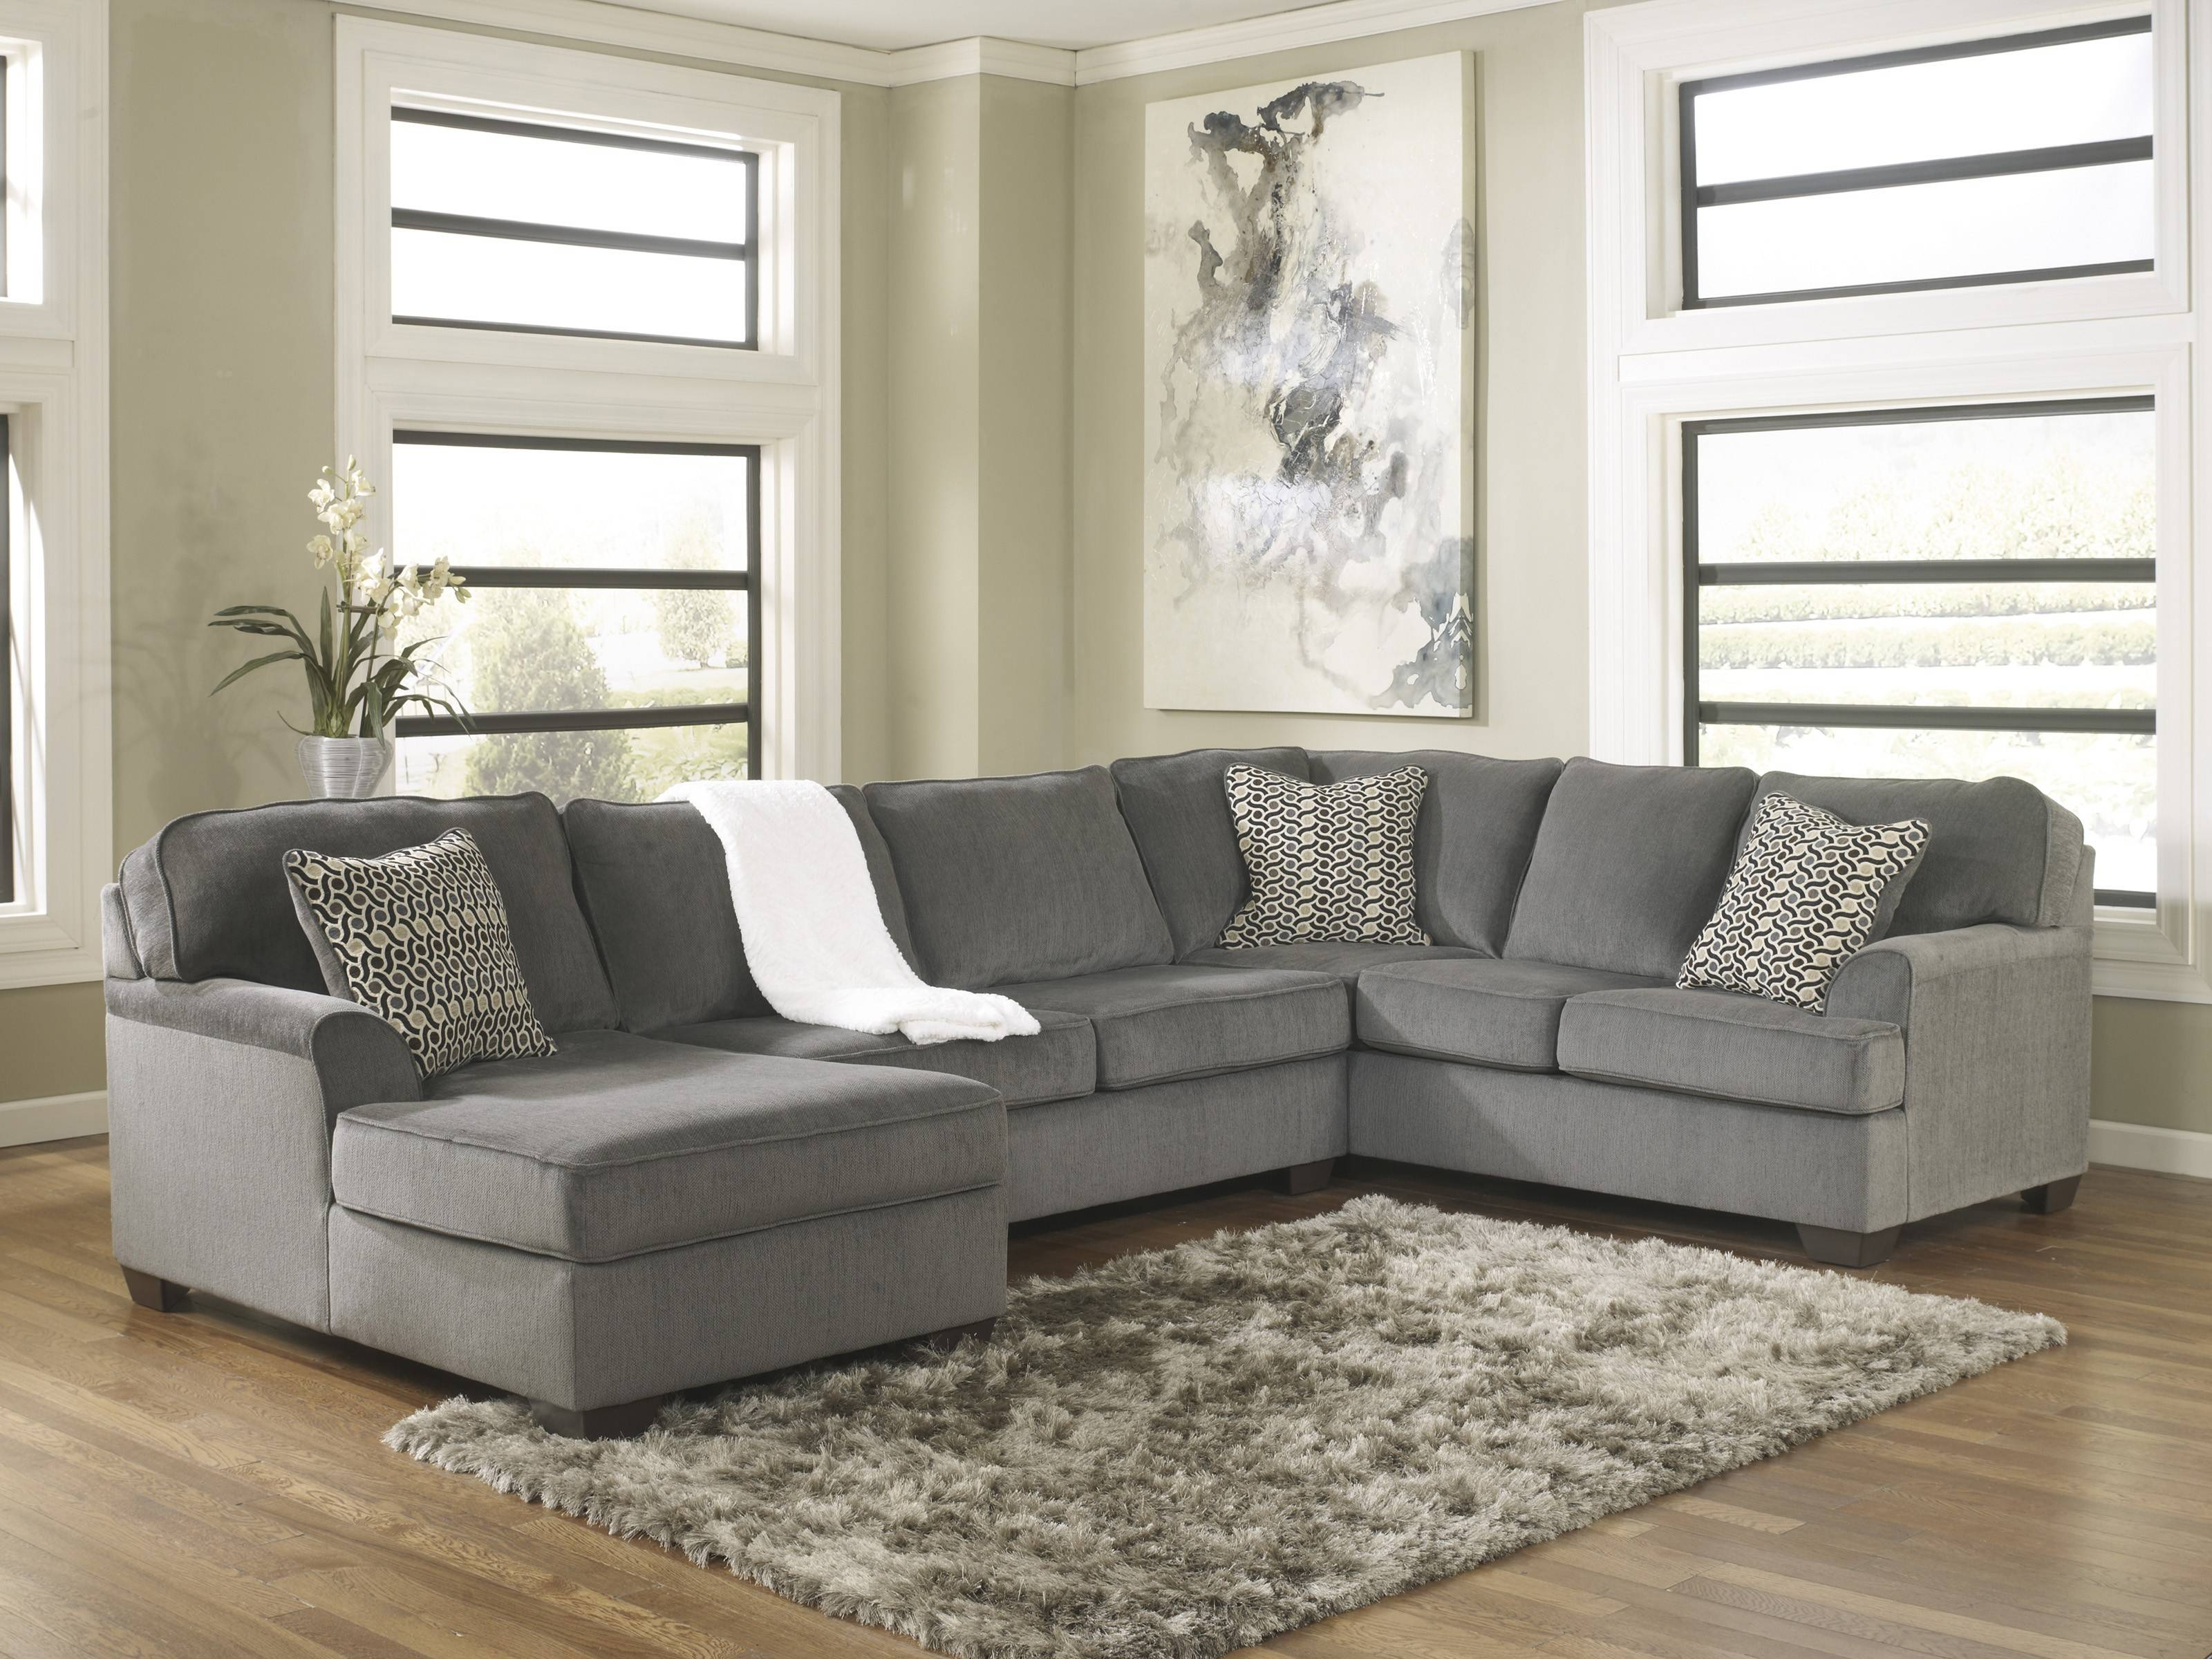 Loric Smoke 3-Piece Sectional Sofa For $790.00 - Furnitureusa pertaining to Media Sofa Sectionals (Image 10 of 25)